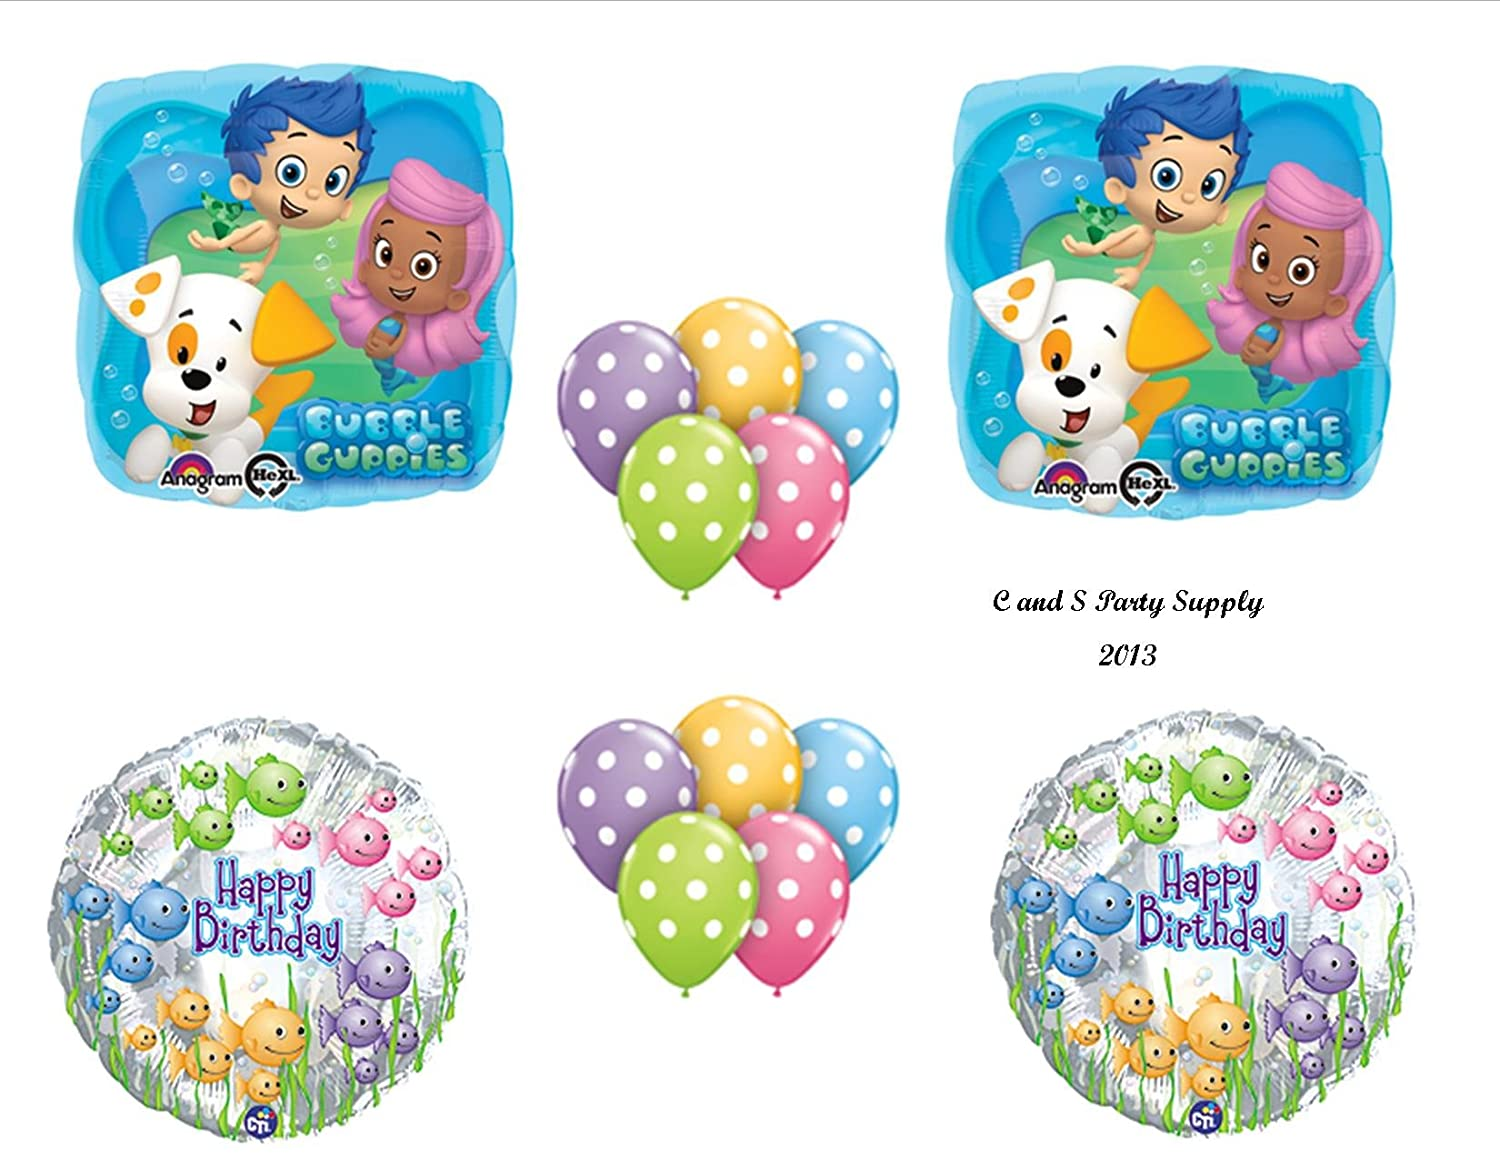 Amazon.com: Bubble Guppies 14 PIECE Birthday Party Balloons ...